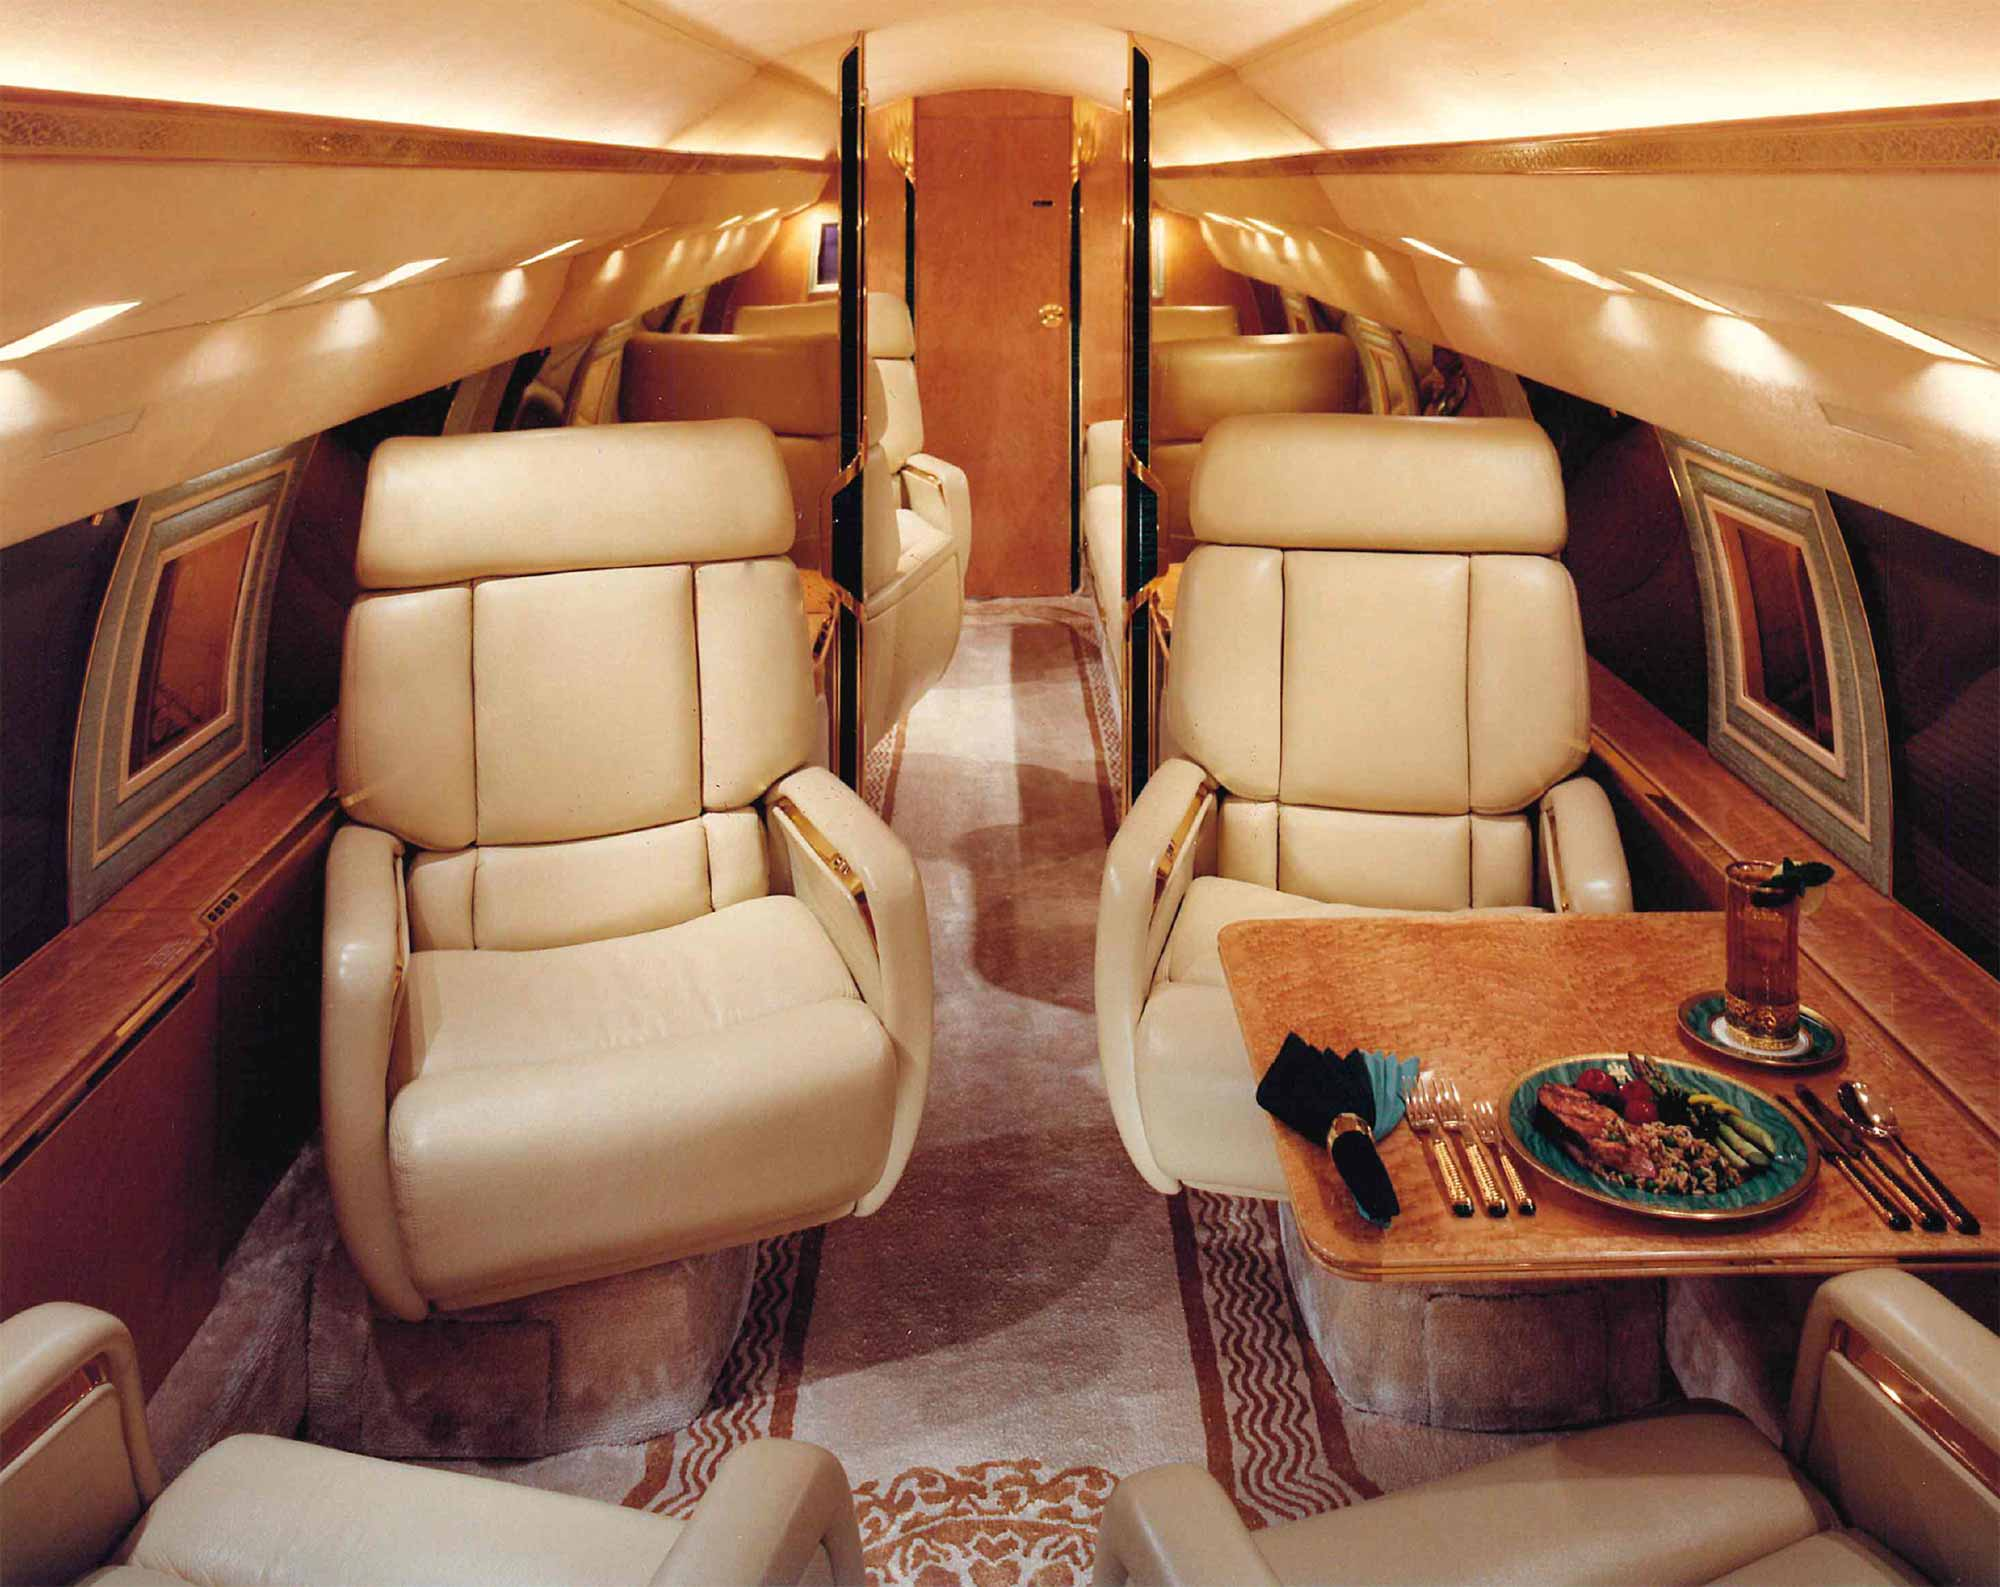 A meal sits atop the passenger table in a custom Gulfstream jet airplane